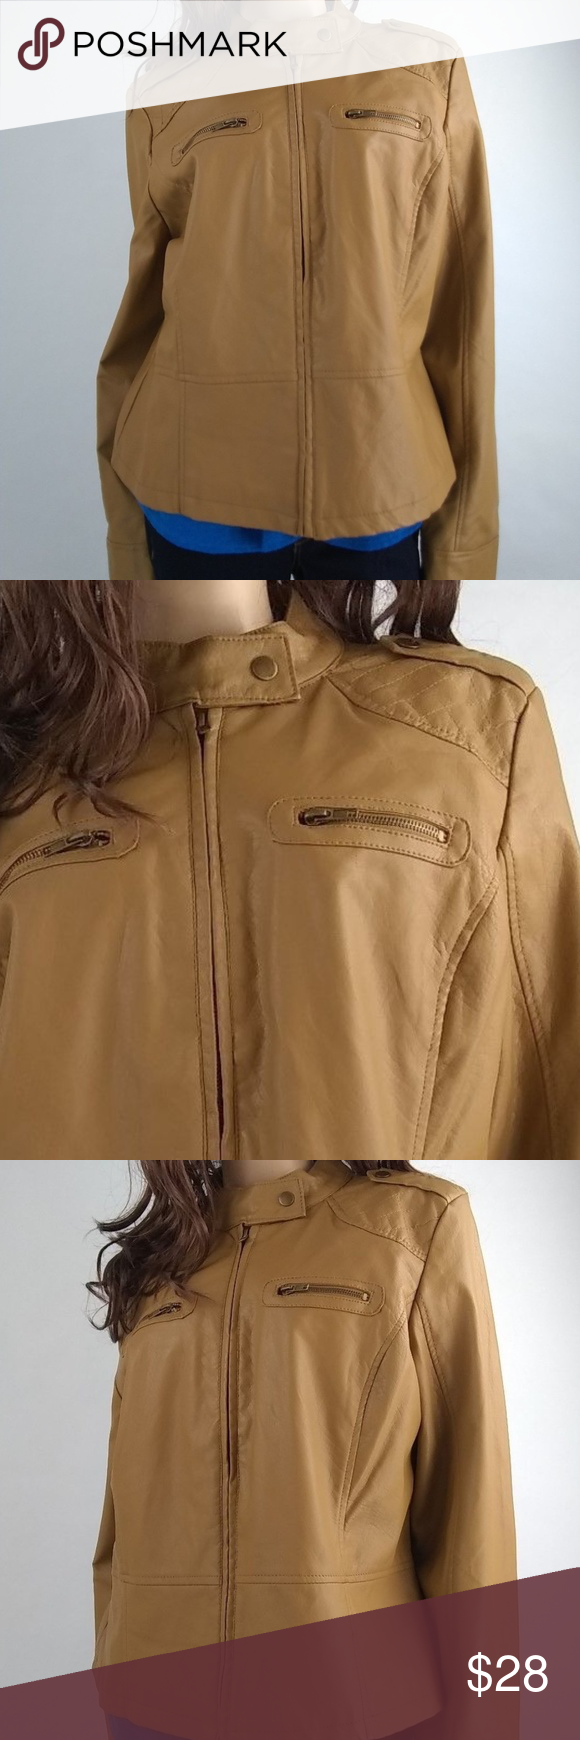 I.B. Diffusion Tan Faux Leather Zip Jacket XL Leather